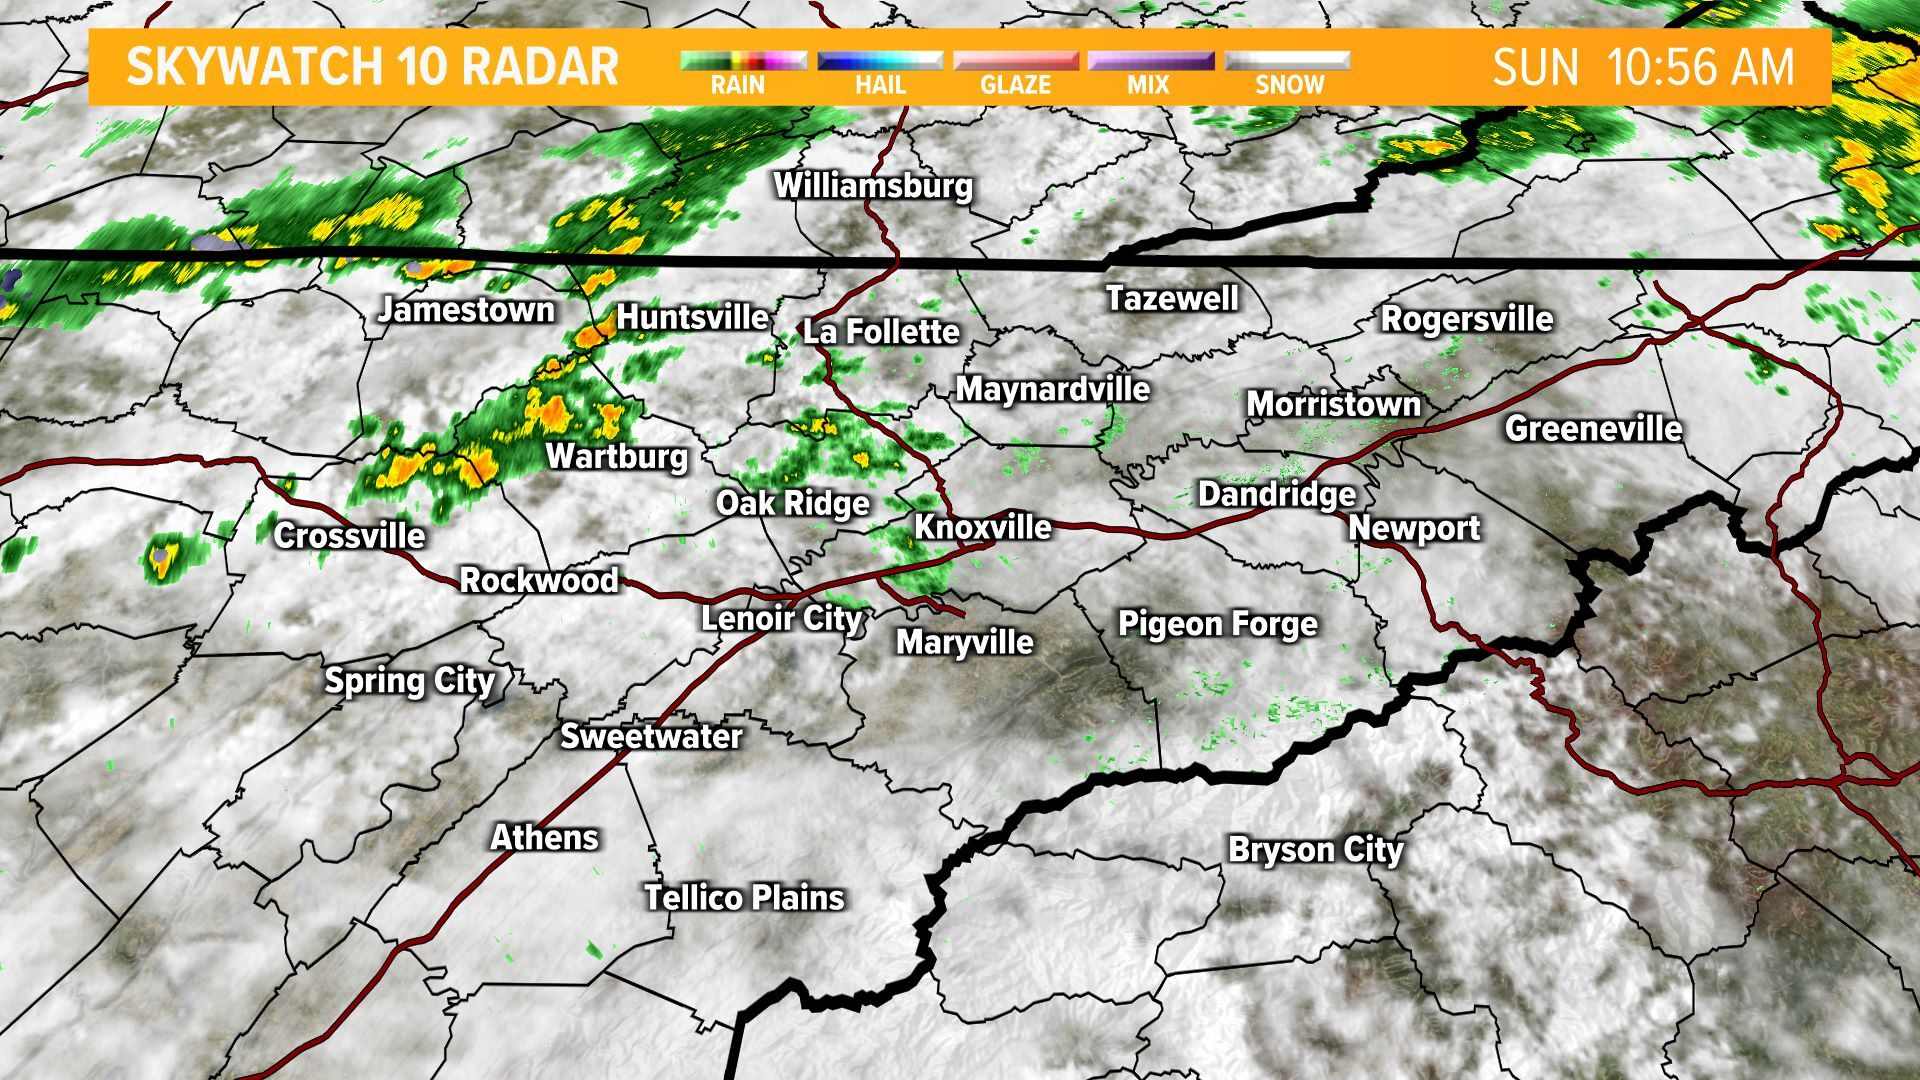 East Tennessee Maps On WBIR In Knoxville WBIRcom - Us radar weather map online